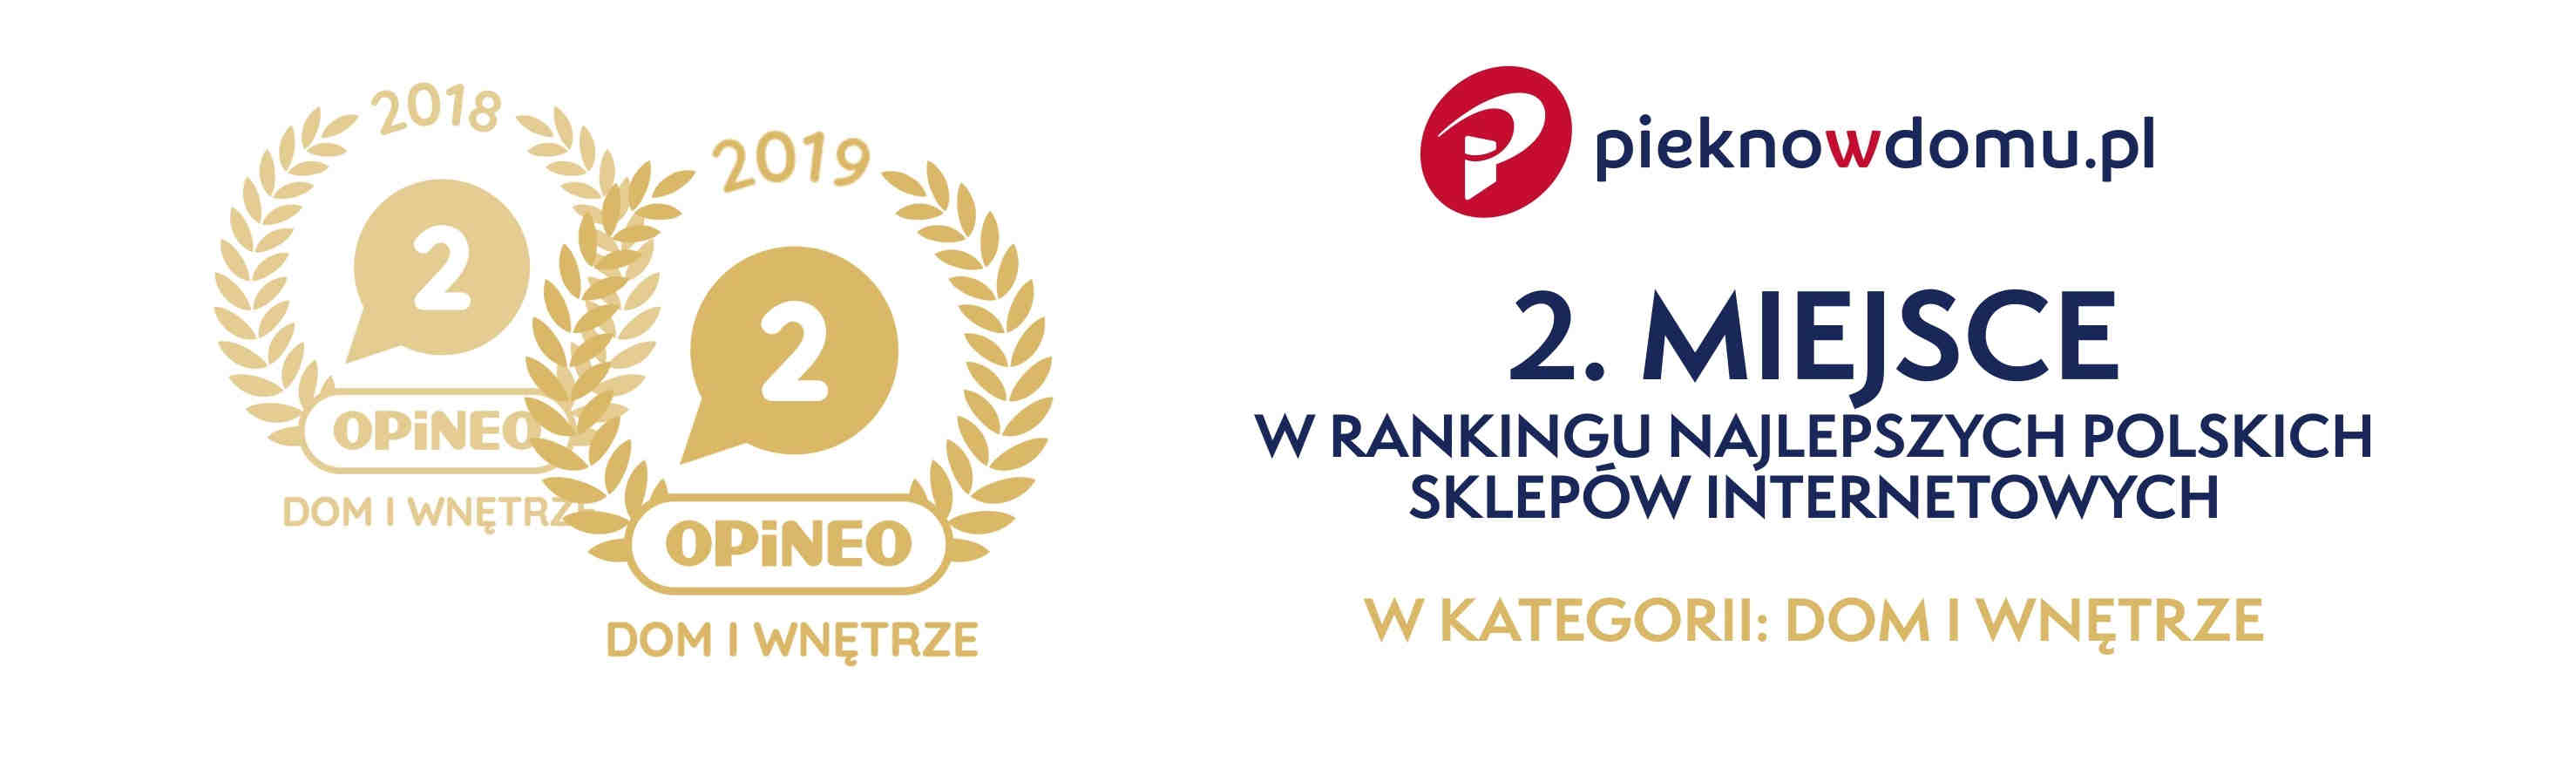 Pieknowdomu.pl w rankingu Opineo 2019